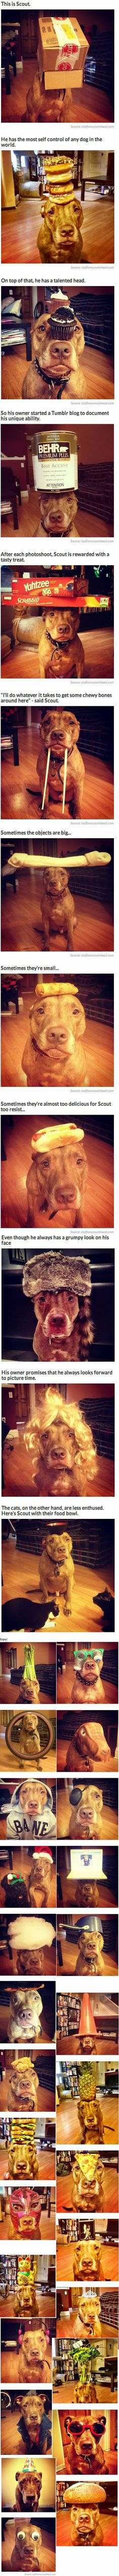 WowGags! OMG, This Dog Is Amazing And So his Owner